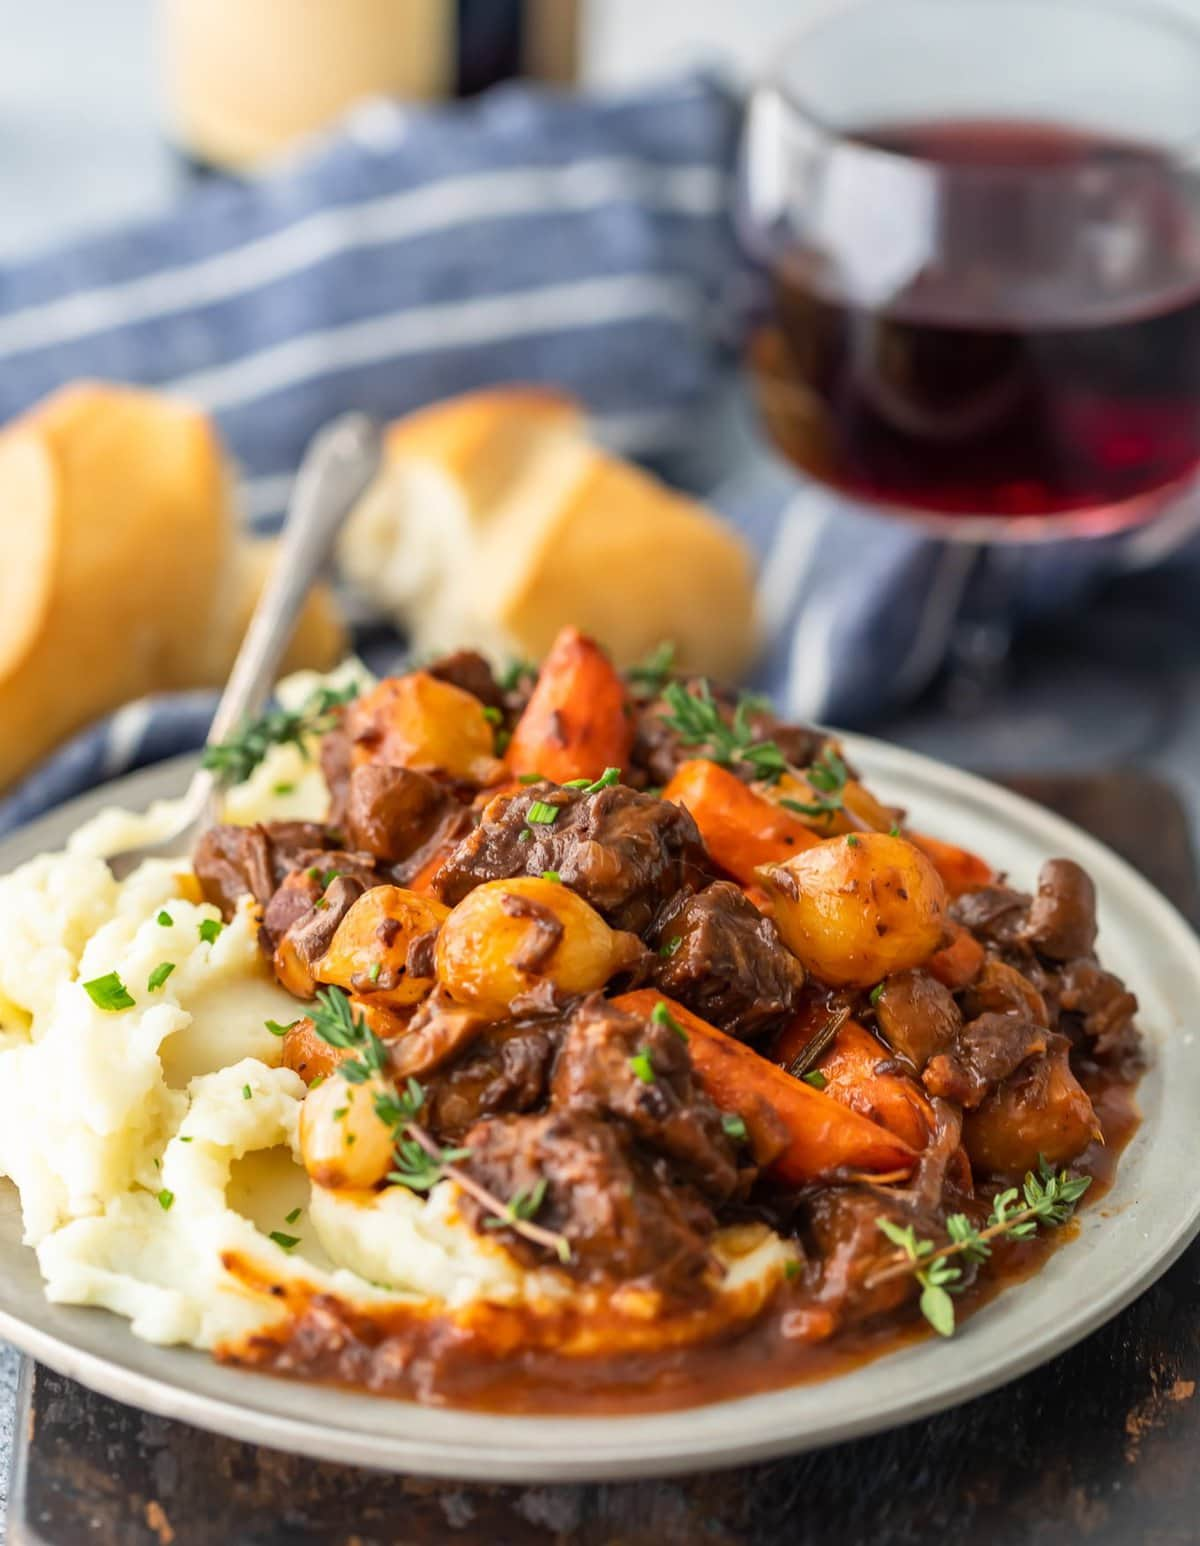 beef bourguignon recipe with carrots and onions